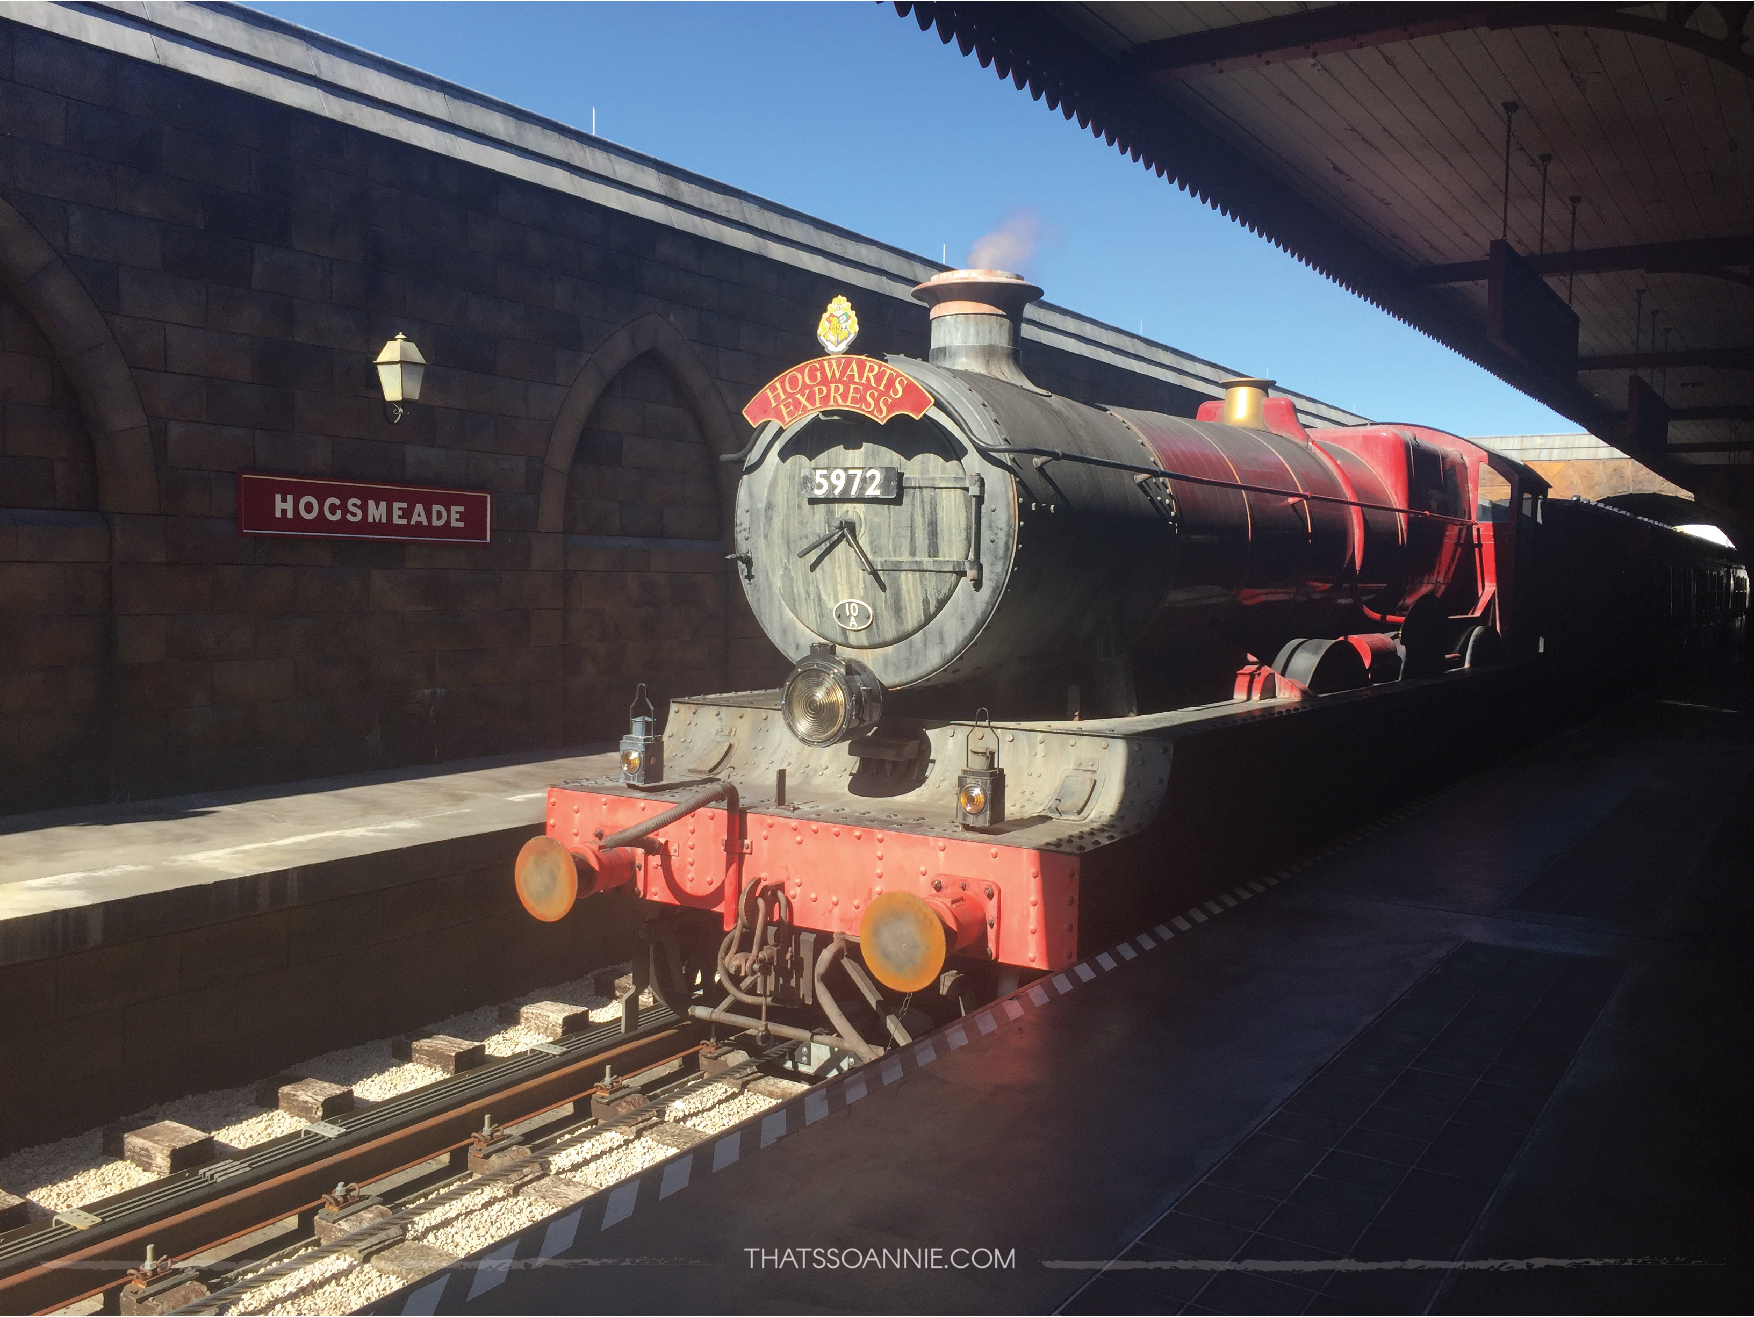 Hogwarts Express, The Wizarding World of Harry Potter